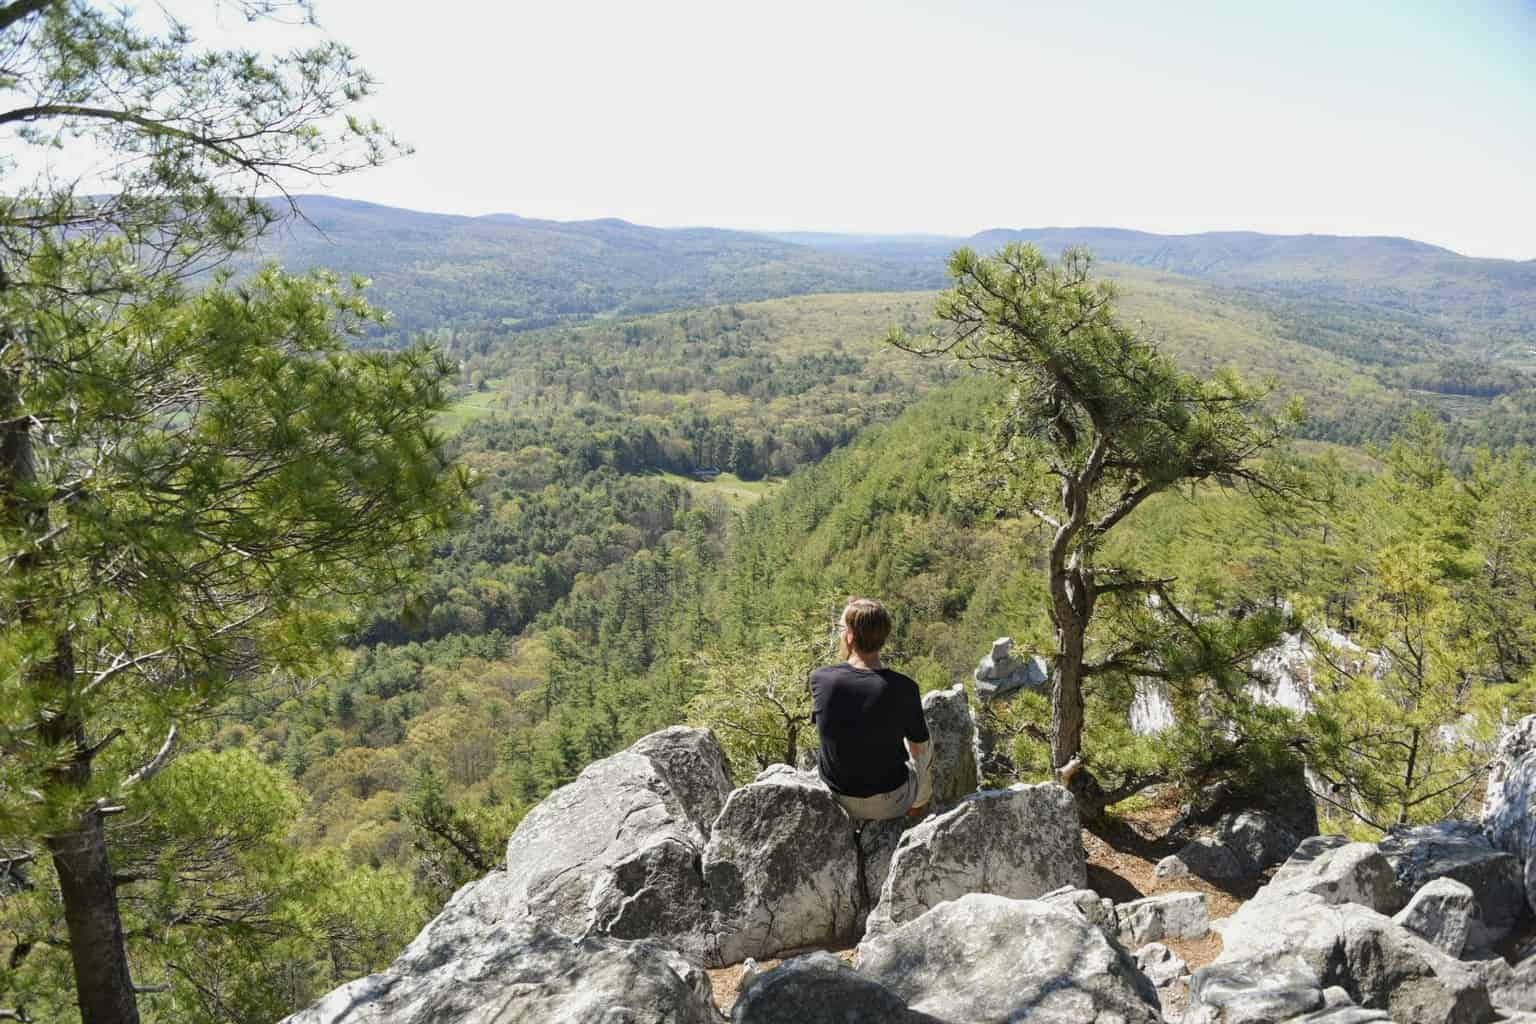 Enjoying the view from Devil's Pulpit on Monument Mountain in Great Barrington, MA.